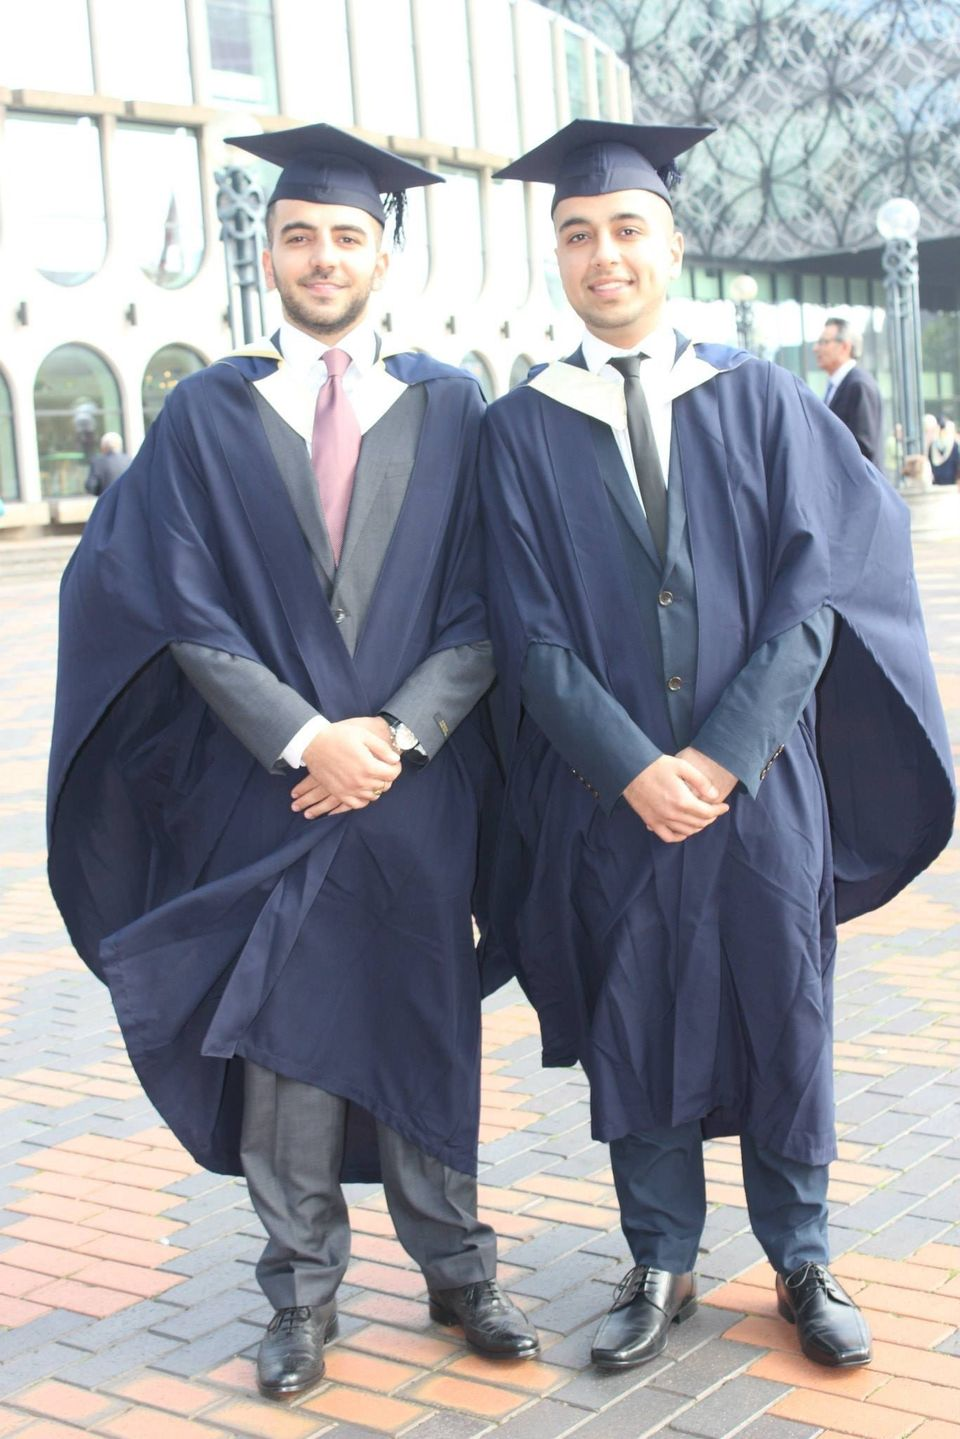 Amad (right) has graduated from a degree in criminology at Birmingham University since